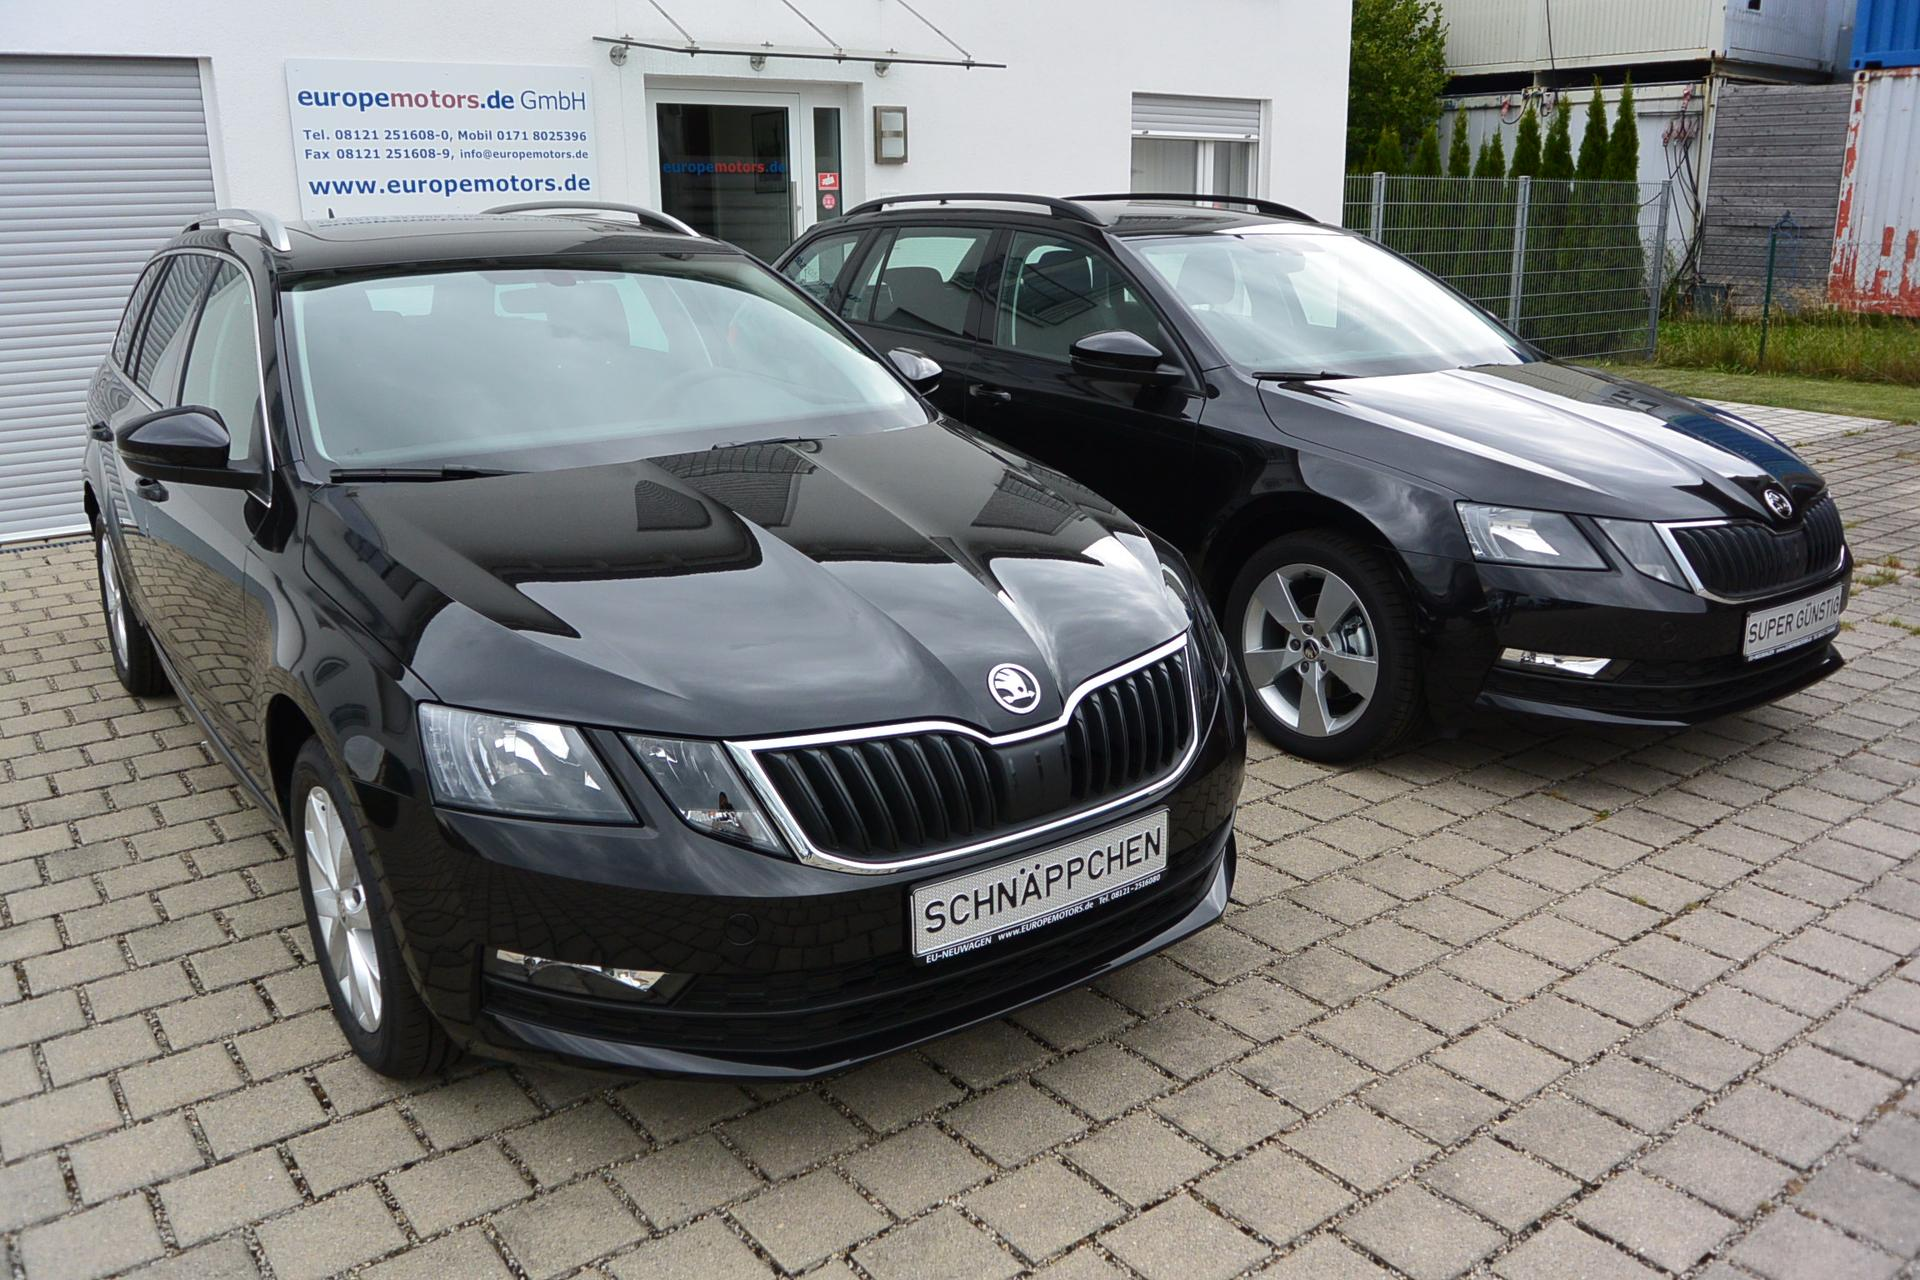 skoda octavia combi active 1 0 tsi 85 kw 115 ps reimport. Black Bedroom Furniture Sets. Home Design Ideas